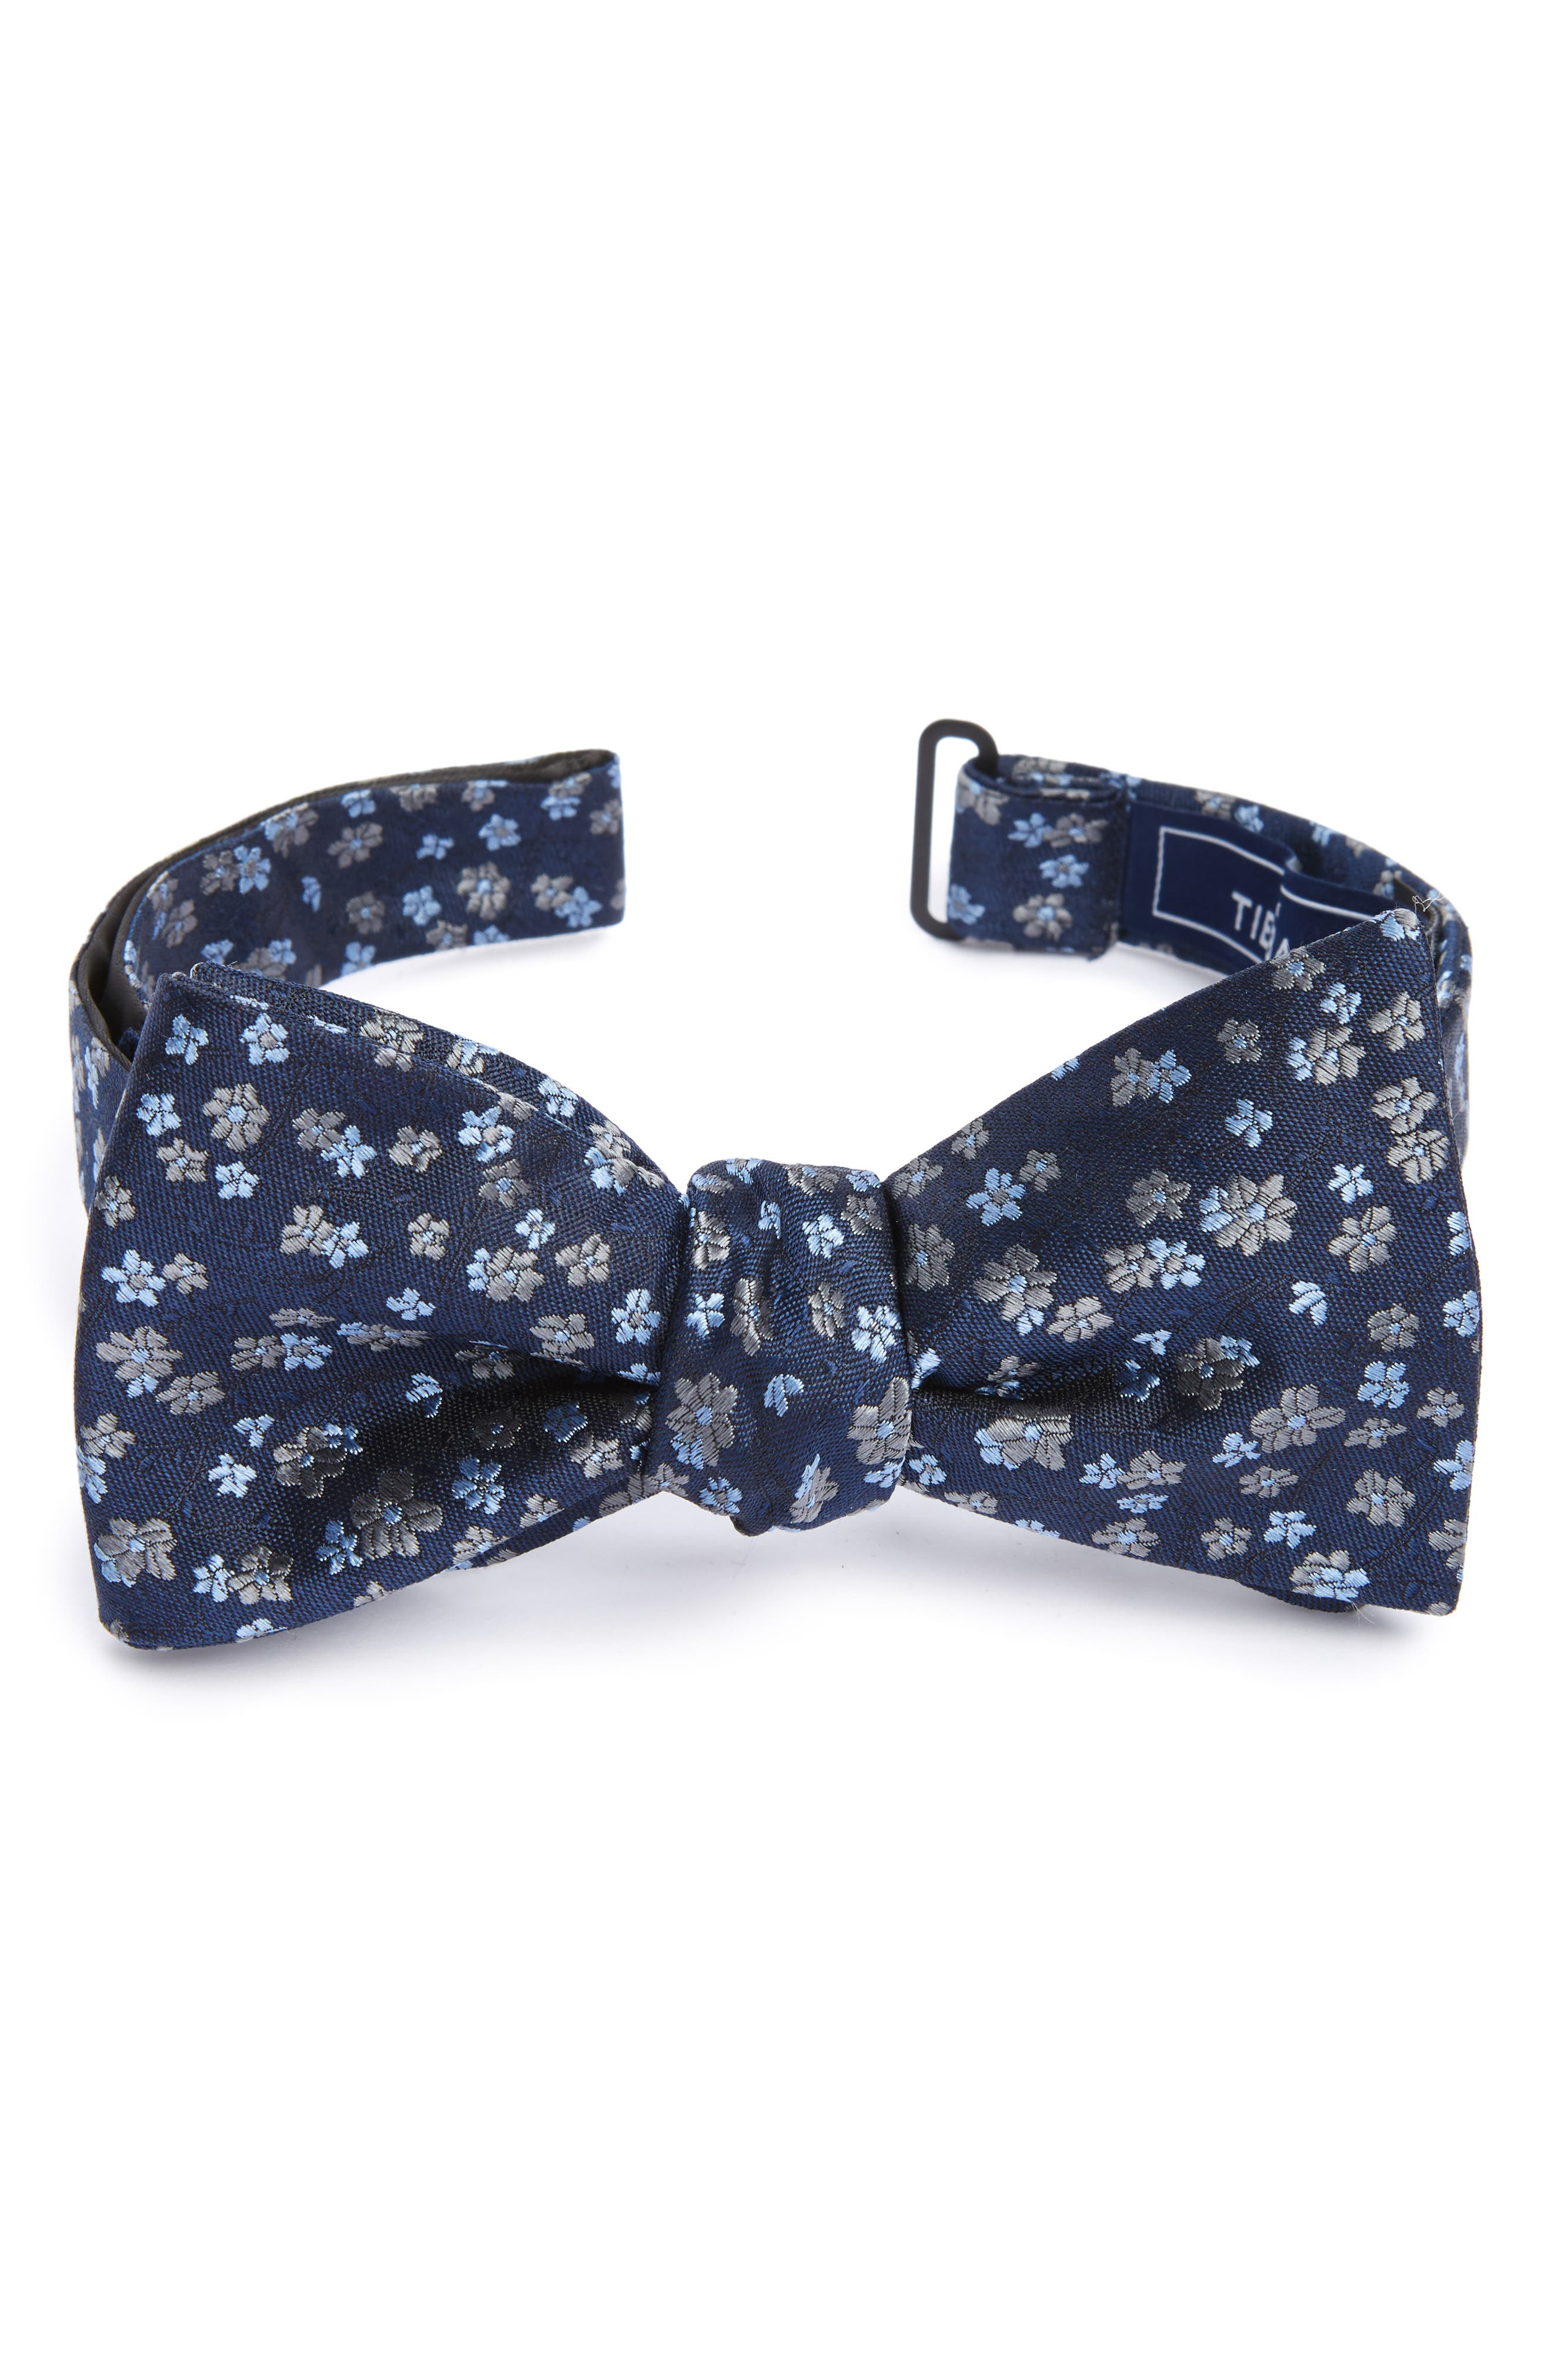 Main Image - The Tie Bar Freefall Floral Silk Bow Tie